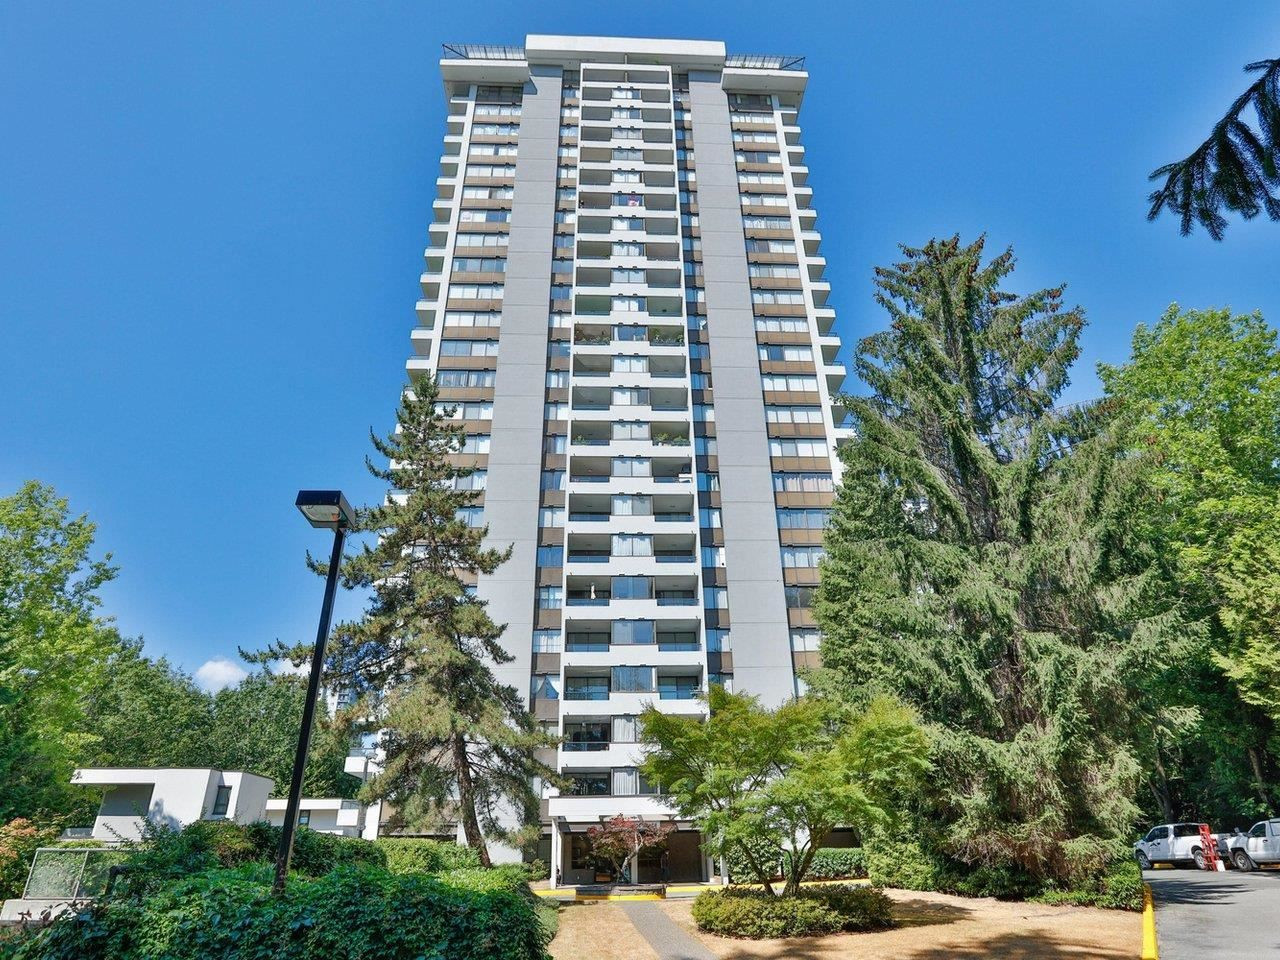 """Main Photo: 2302 9521 CARDSTON Court in Burnaby: Government Road Condo for sale in """"Concorde Place"""" (Burnaby North)  : MLS®# R2604165"""